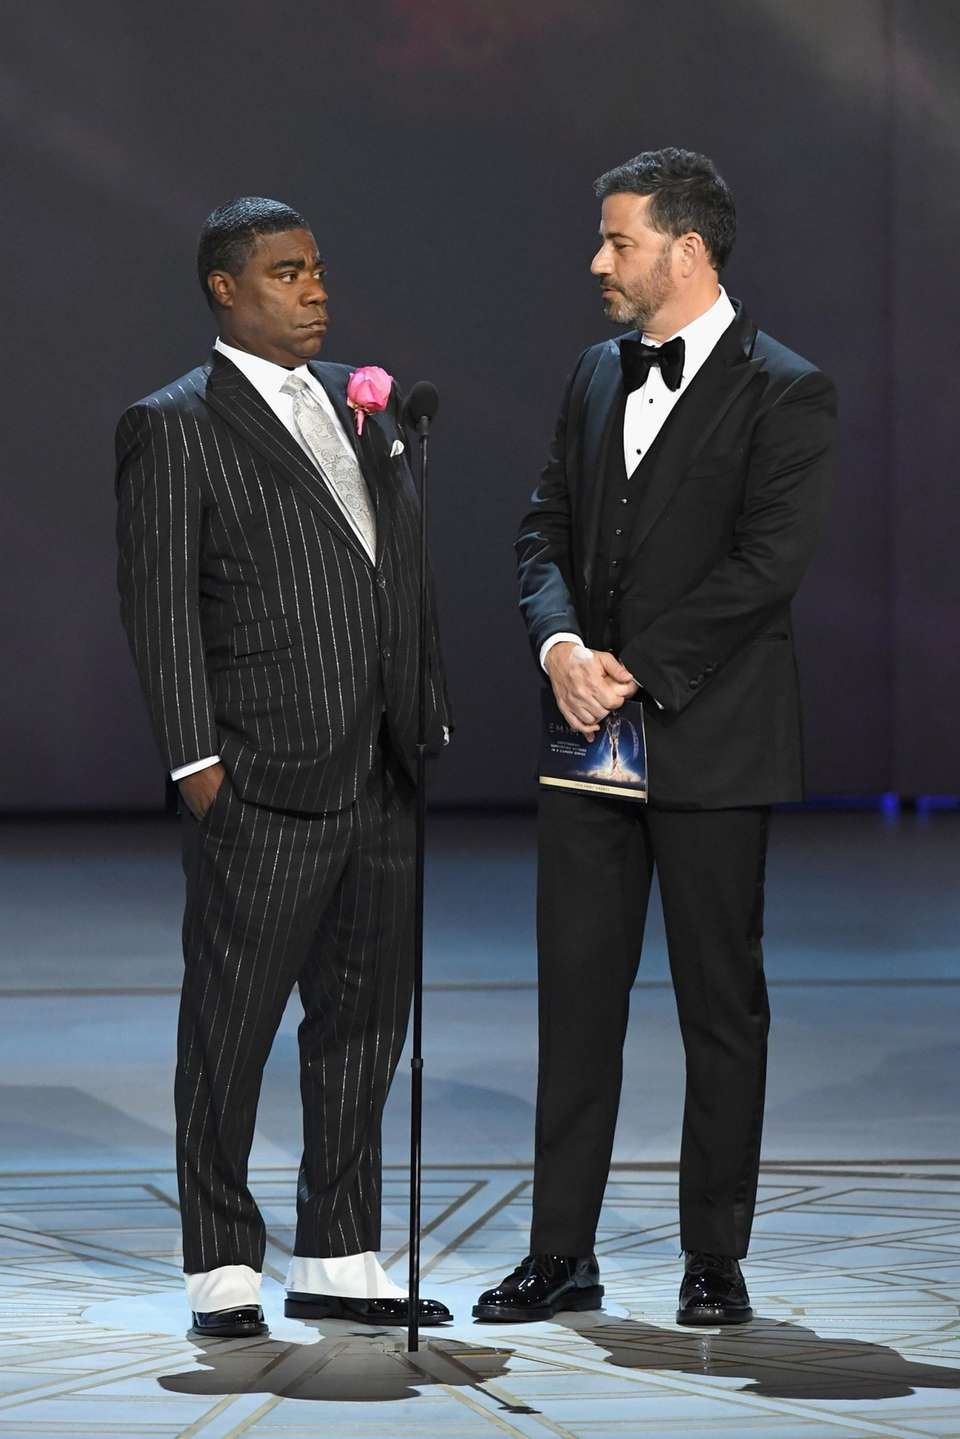 Tracy Morgan, left, and Jimmy Kimmel onstage.